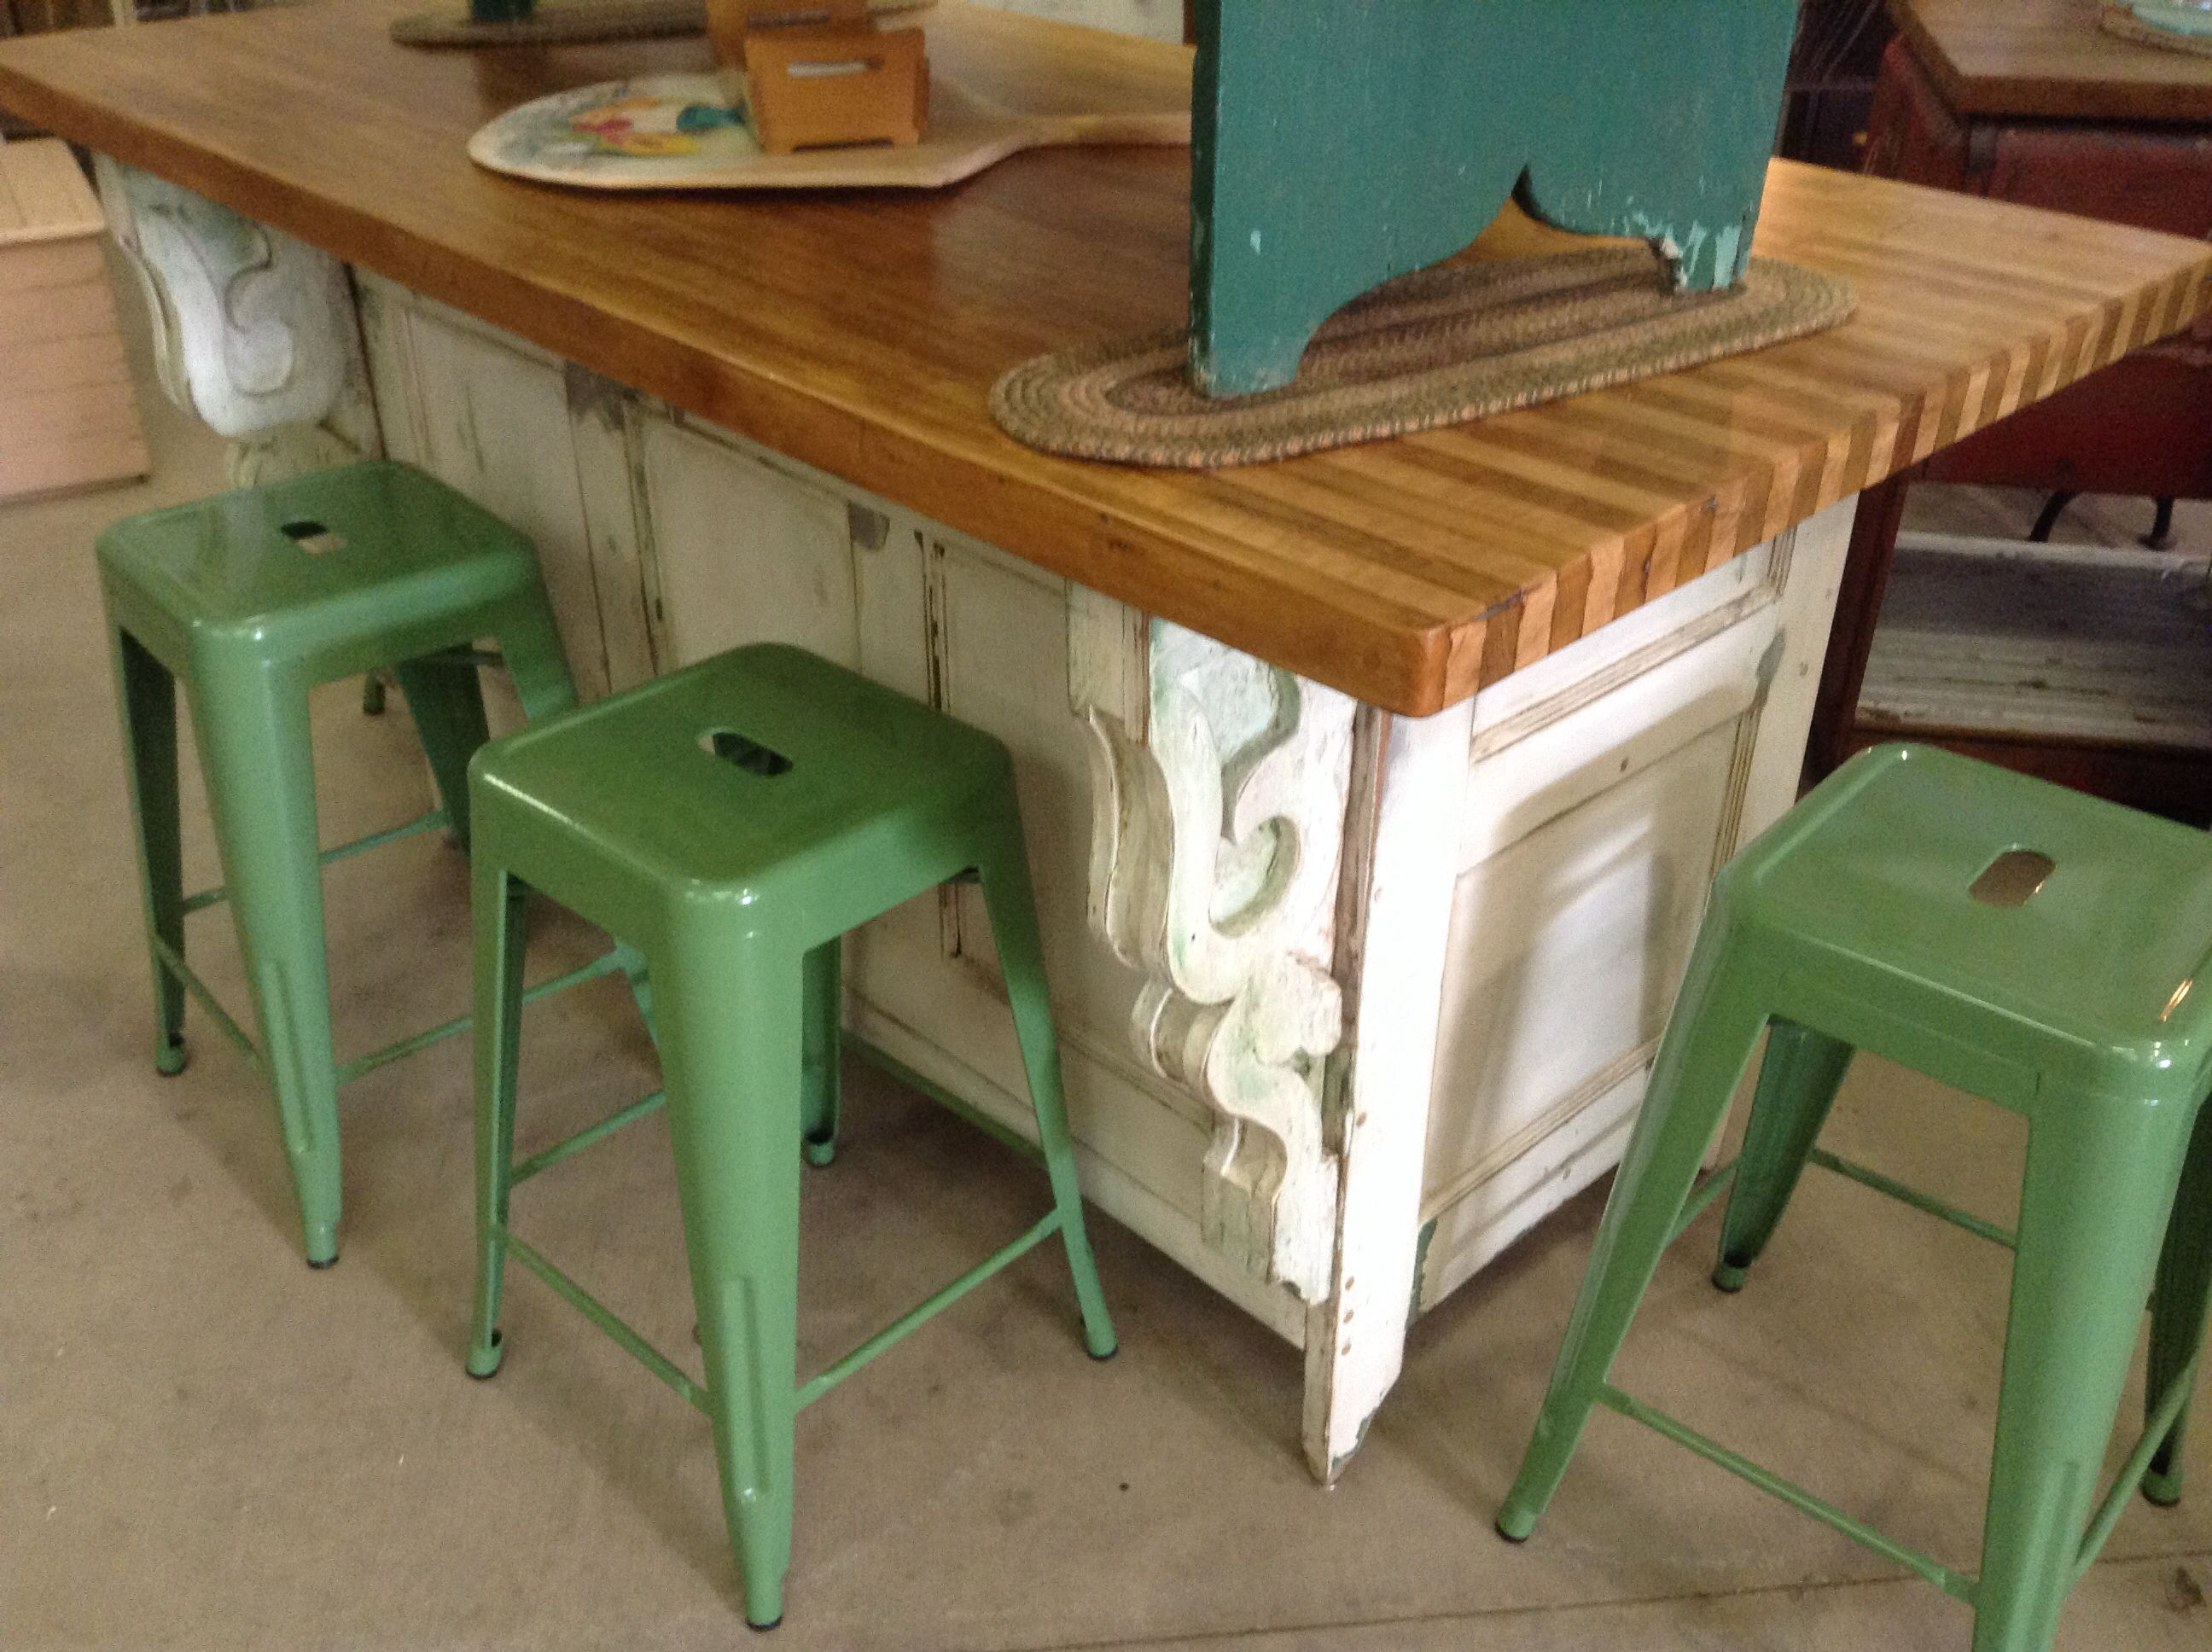 one of a kind kitchen island made from old doors, trim corbels an